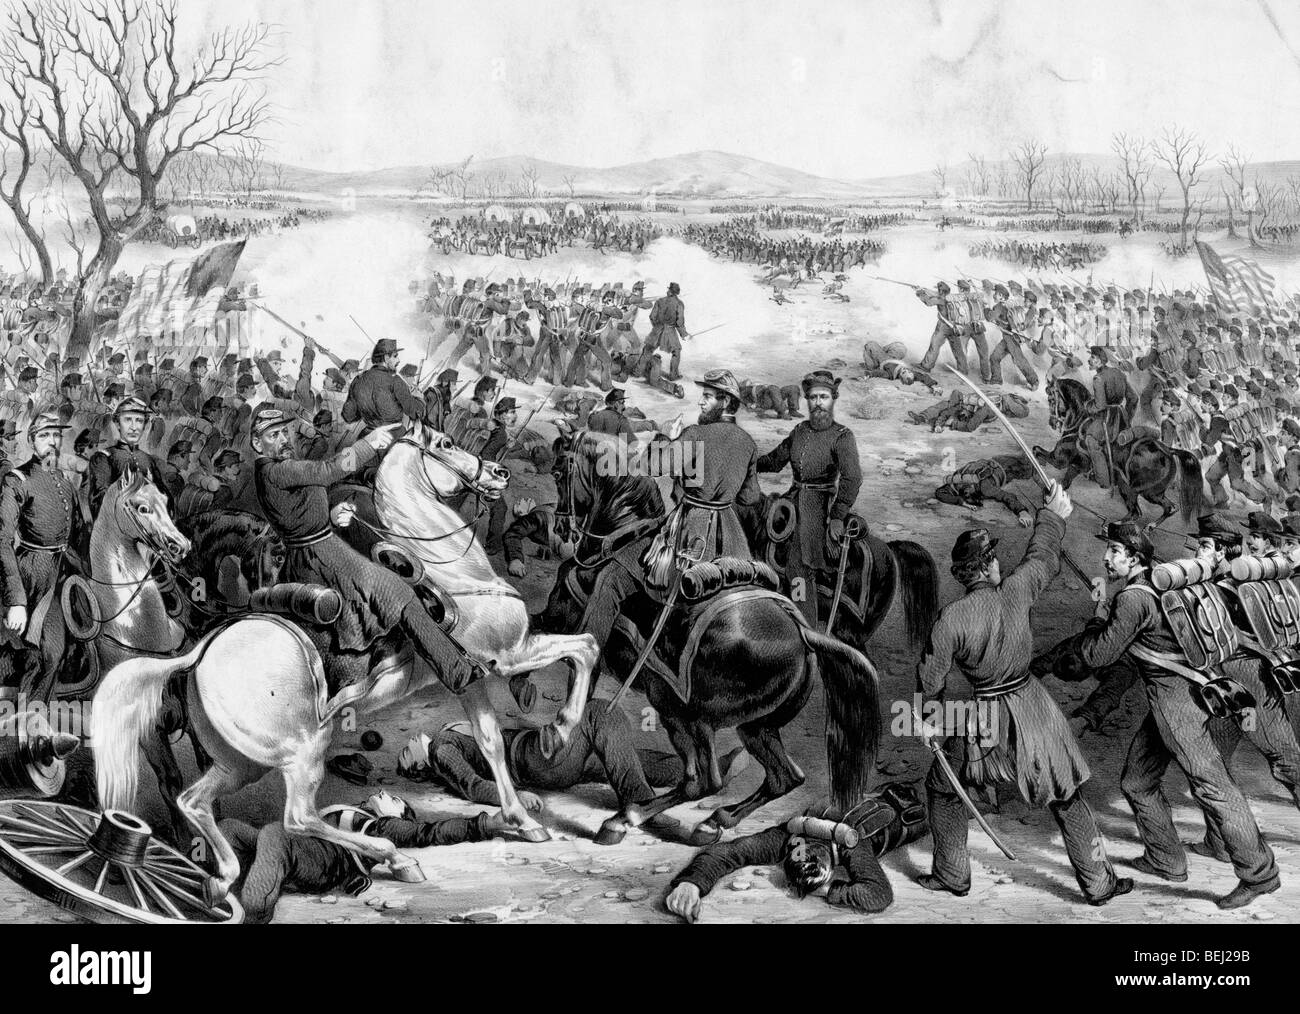 The Battle of Shiloh or Pittsburg Landing, Tennessee during the American Civil War, April 7, 1862 - Stock Image